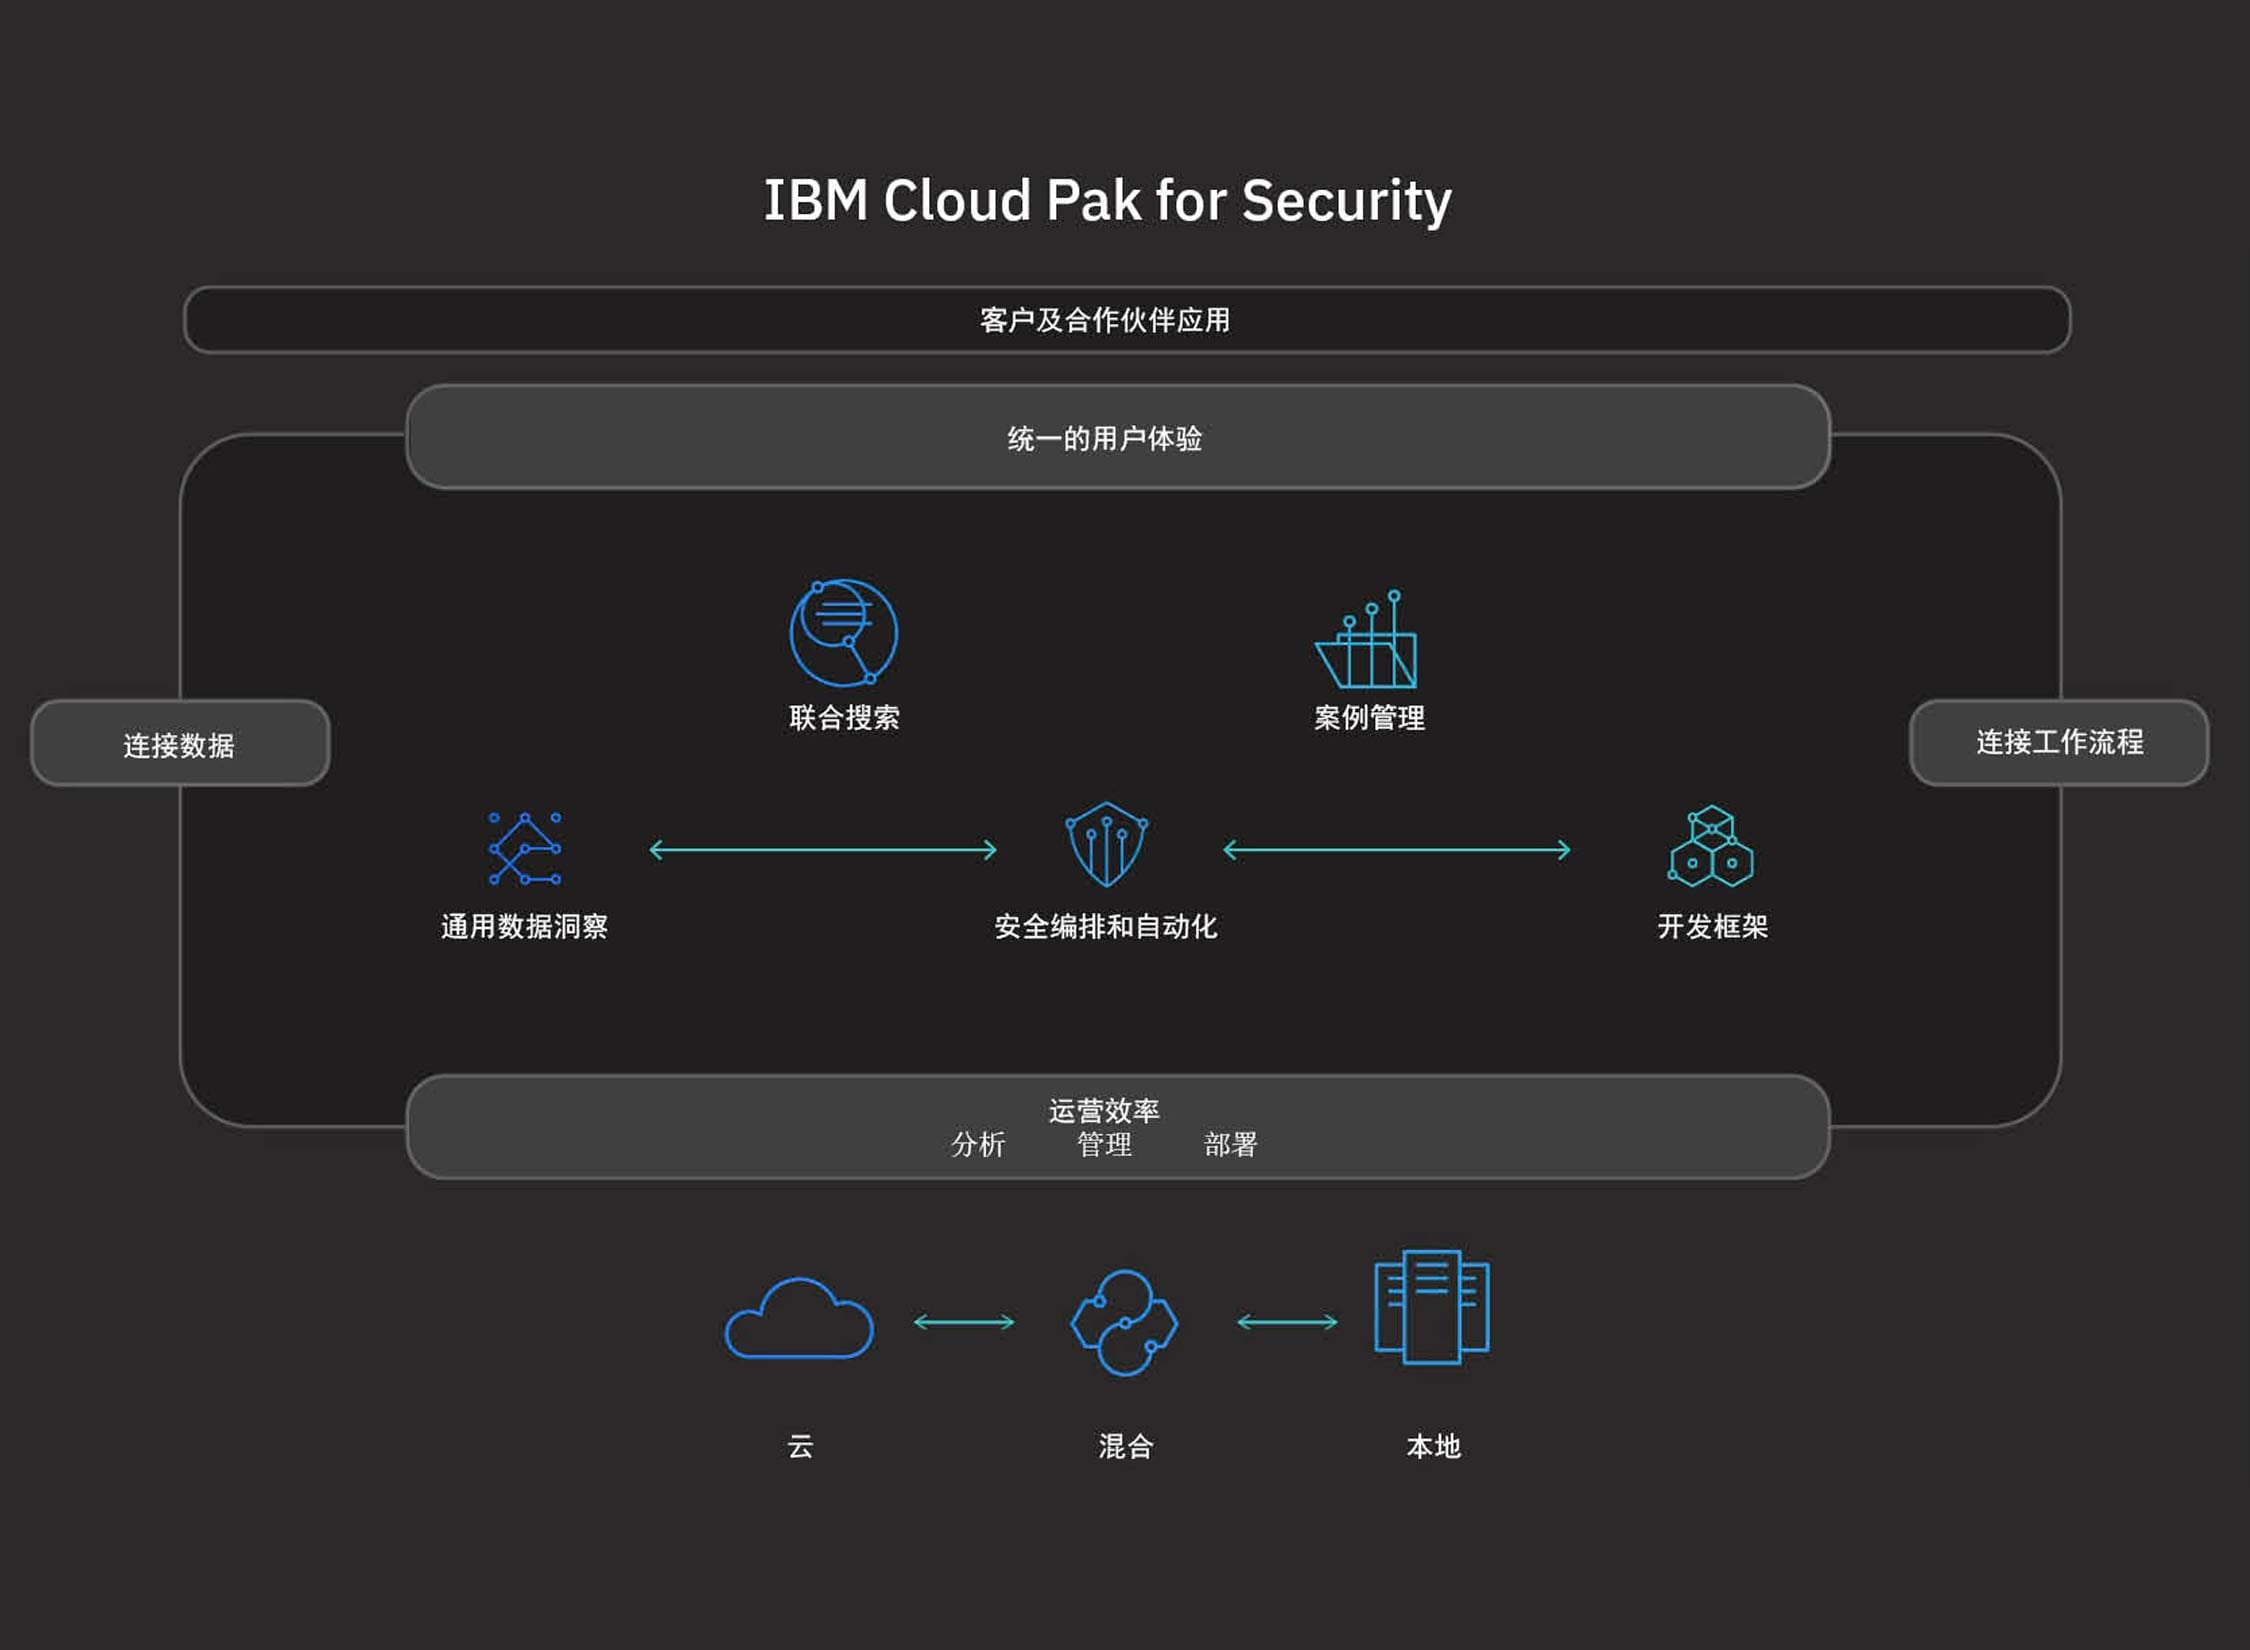 有关 IBM Cloud Pak for Security 工作方式的描述。